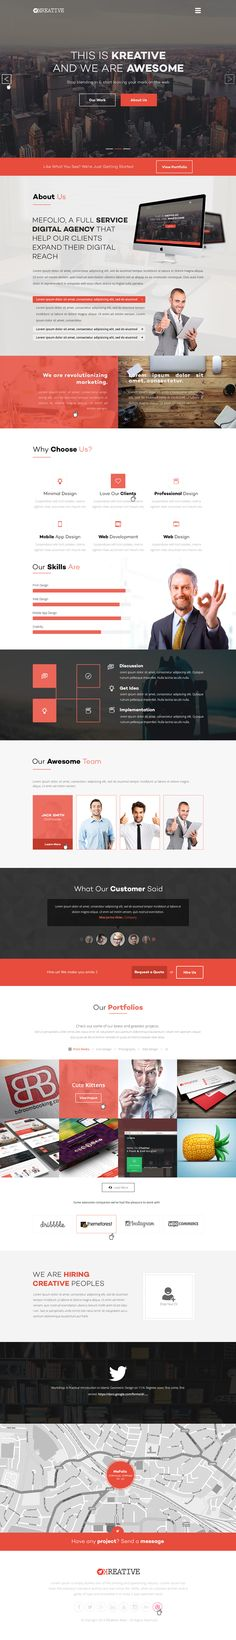 Krefolio - One Page Responsive Bootstrap Website Template (#PSD, #HTML5, #JS, #CSS3)